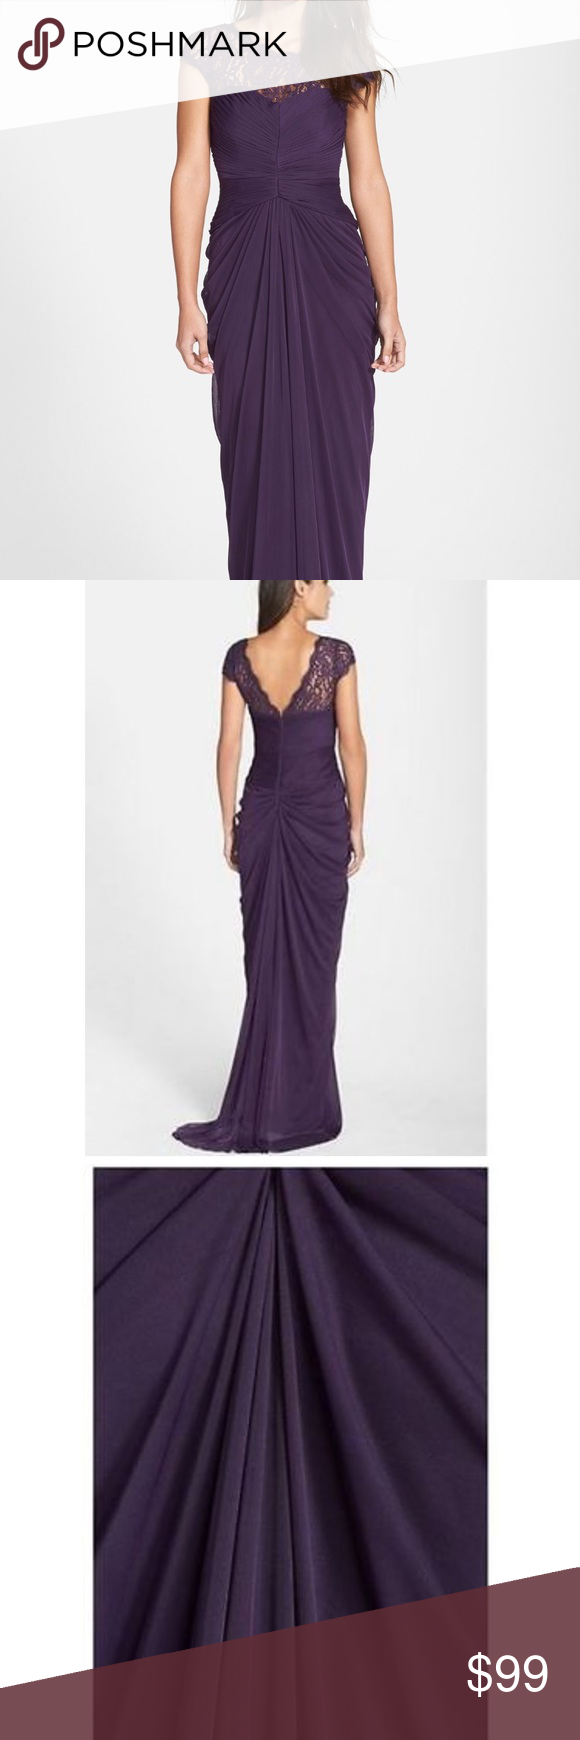 Adrianna Papell lace yoke drape gown NWT   Adrianna papell, Floor ...